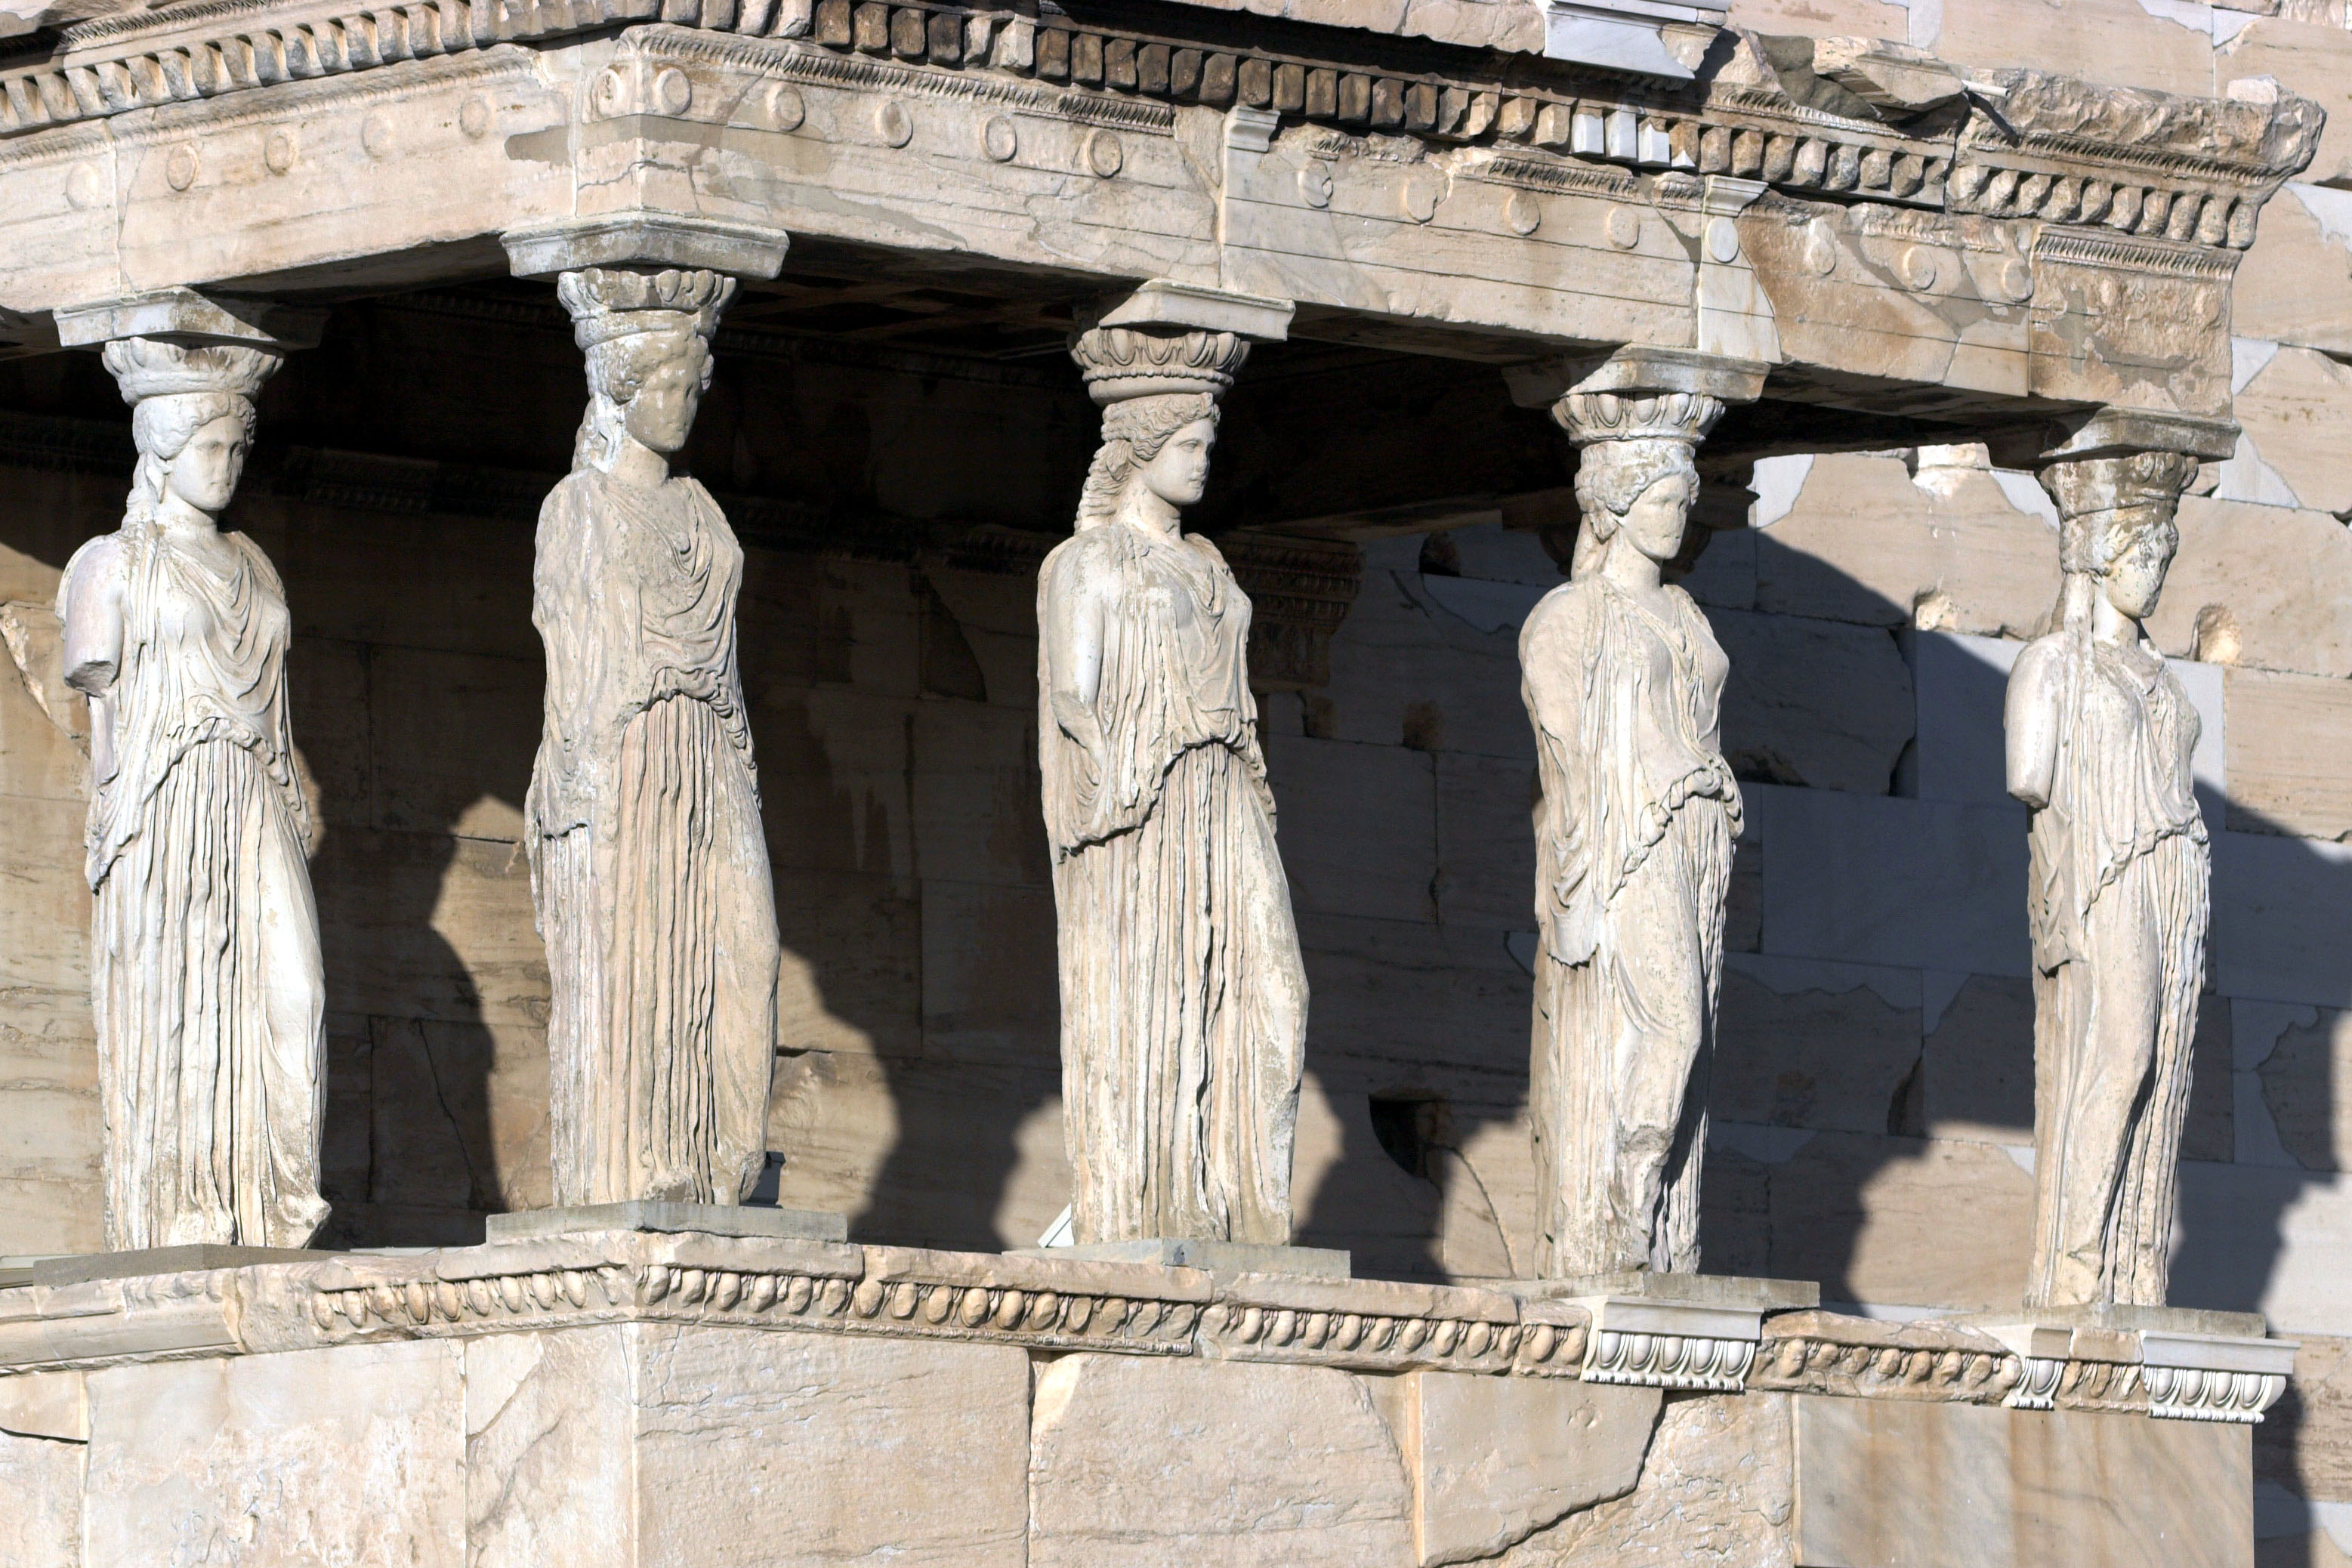 hist-archisectionB - Erechtheum and Porch of Maidens